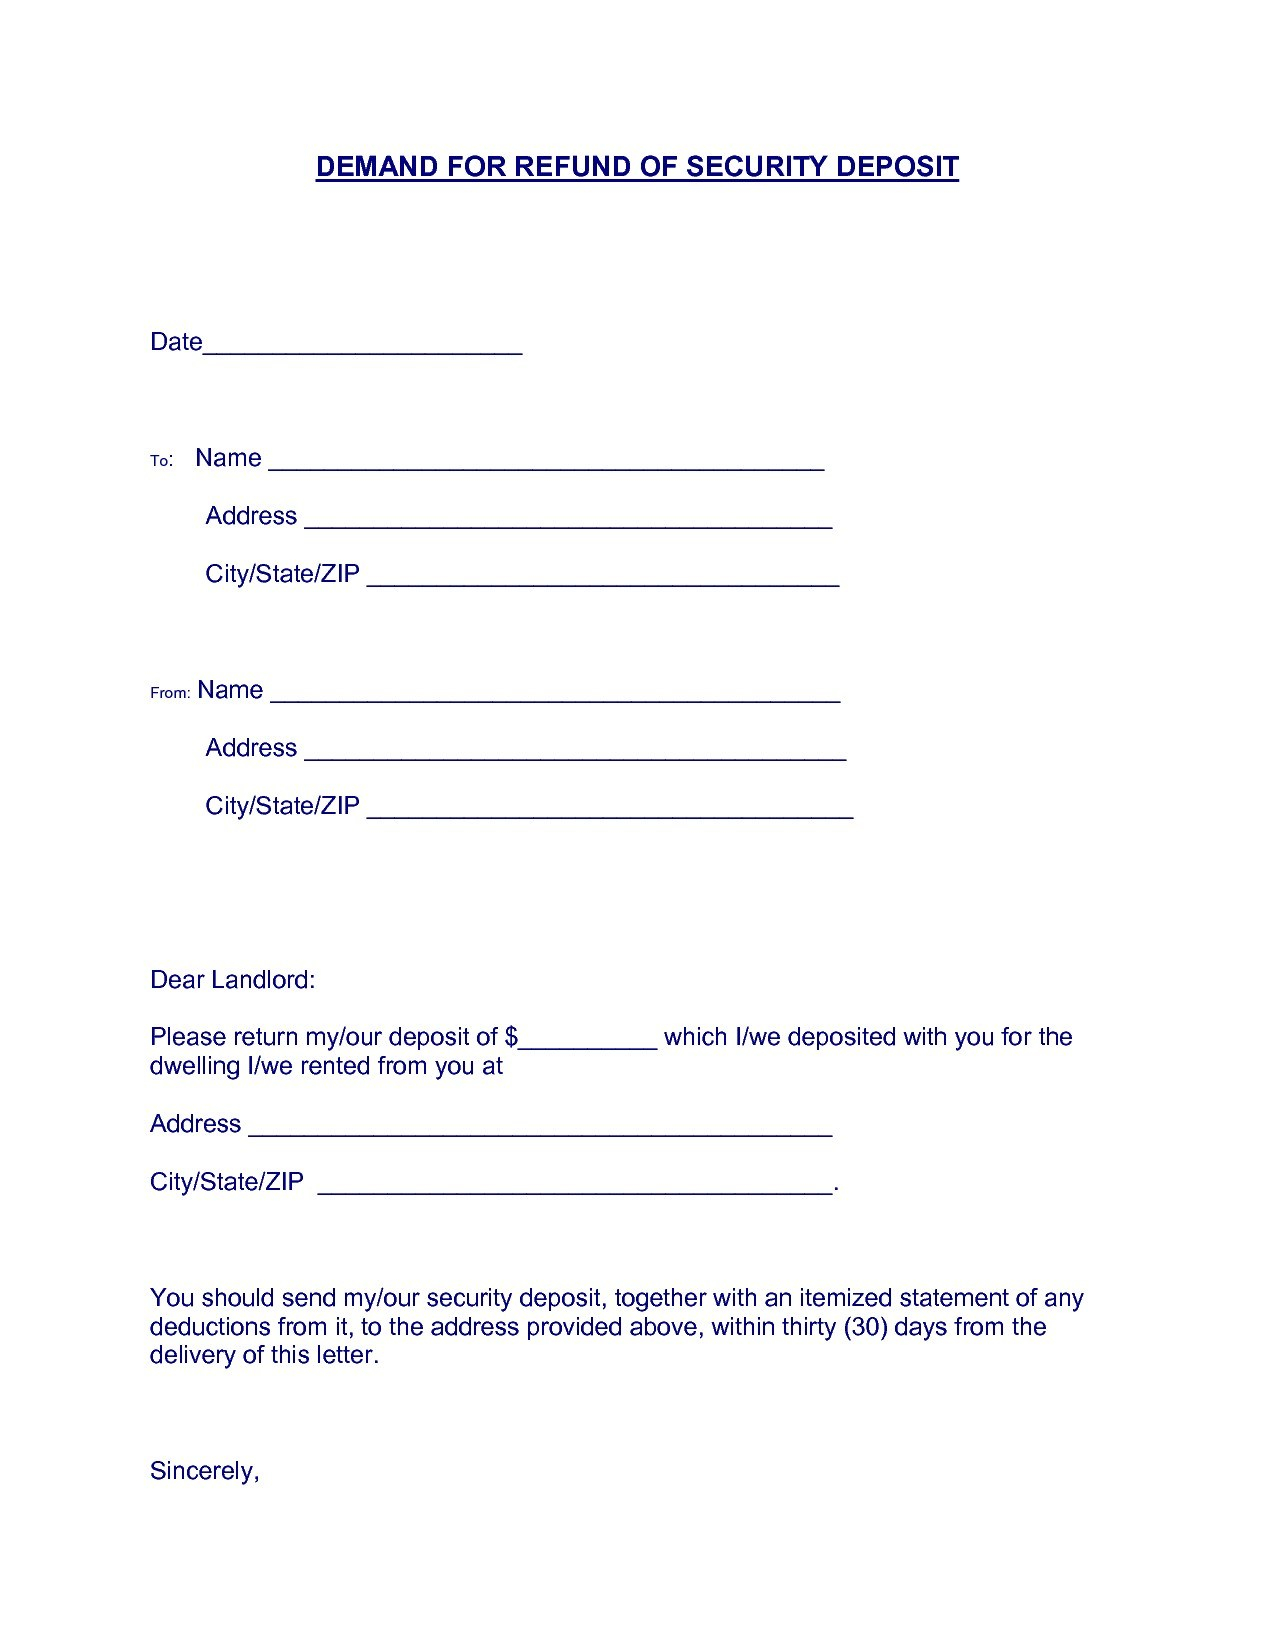 Security Deposit Demand Letter Template Florida - Download Free Template Security Deposit Return Letter Template